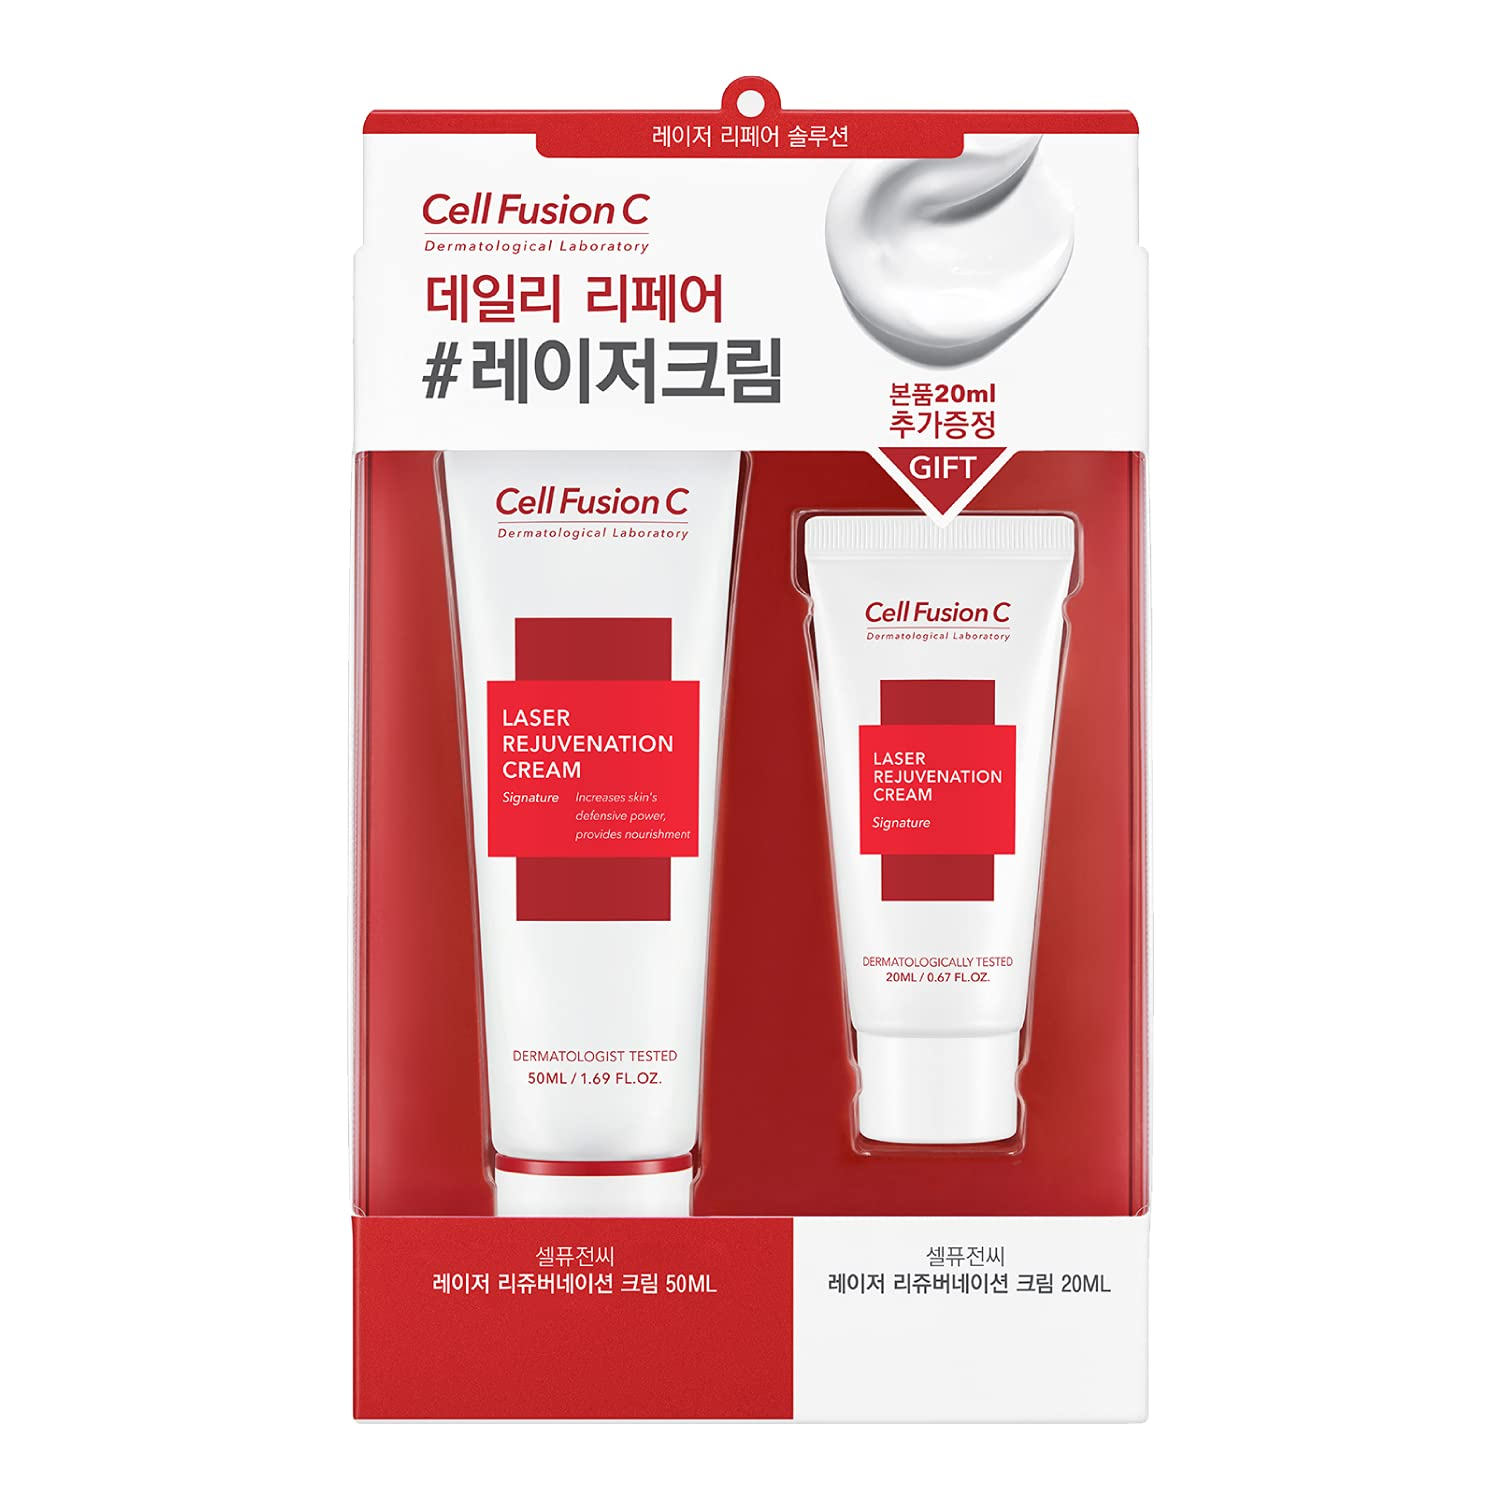 CELL FUSION Bombing free shipping C Laser Rejuvenation Set Cream 50ml+20ml Special New popularity